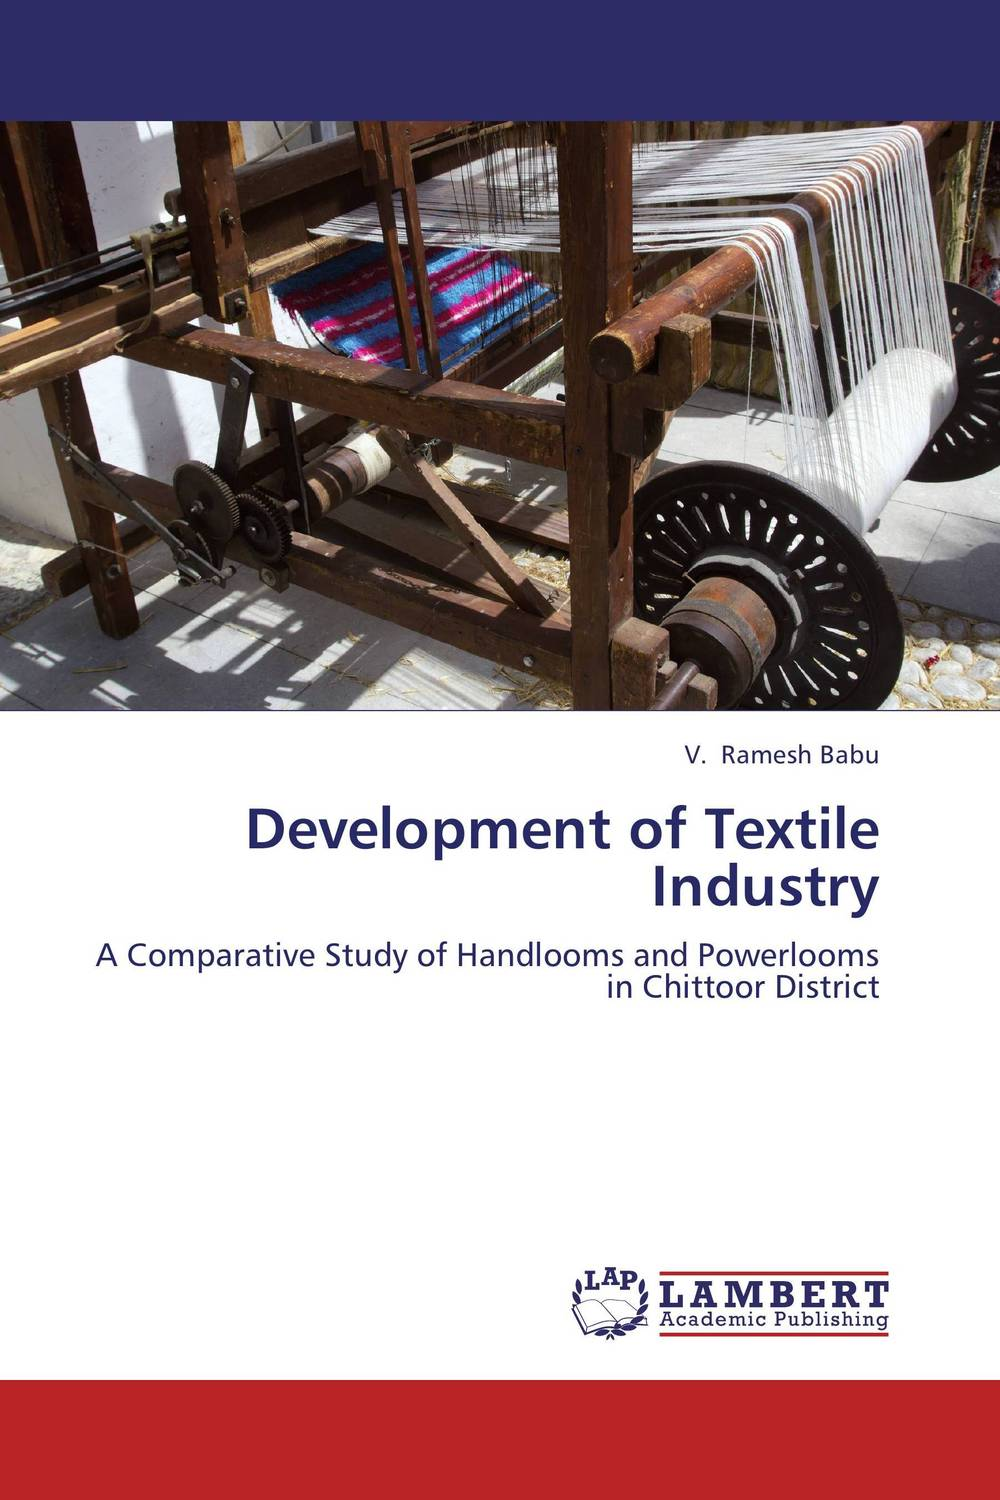 Development of Textile Industry textile volume 1 issue 3 the journal of cloth and culture textile